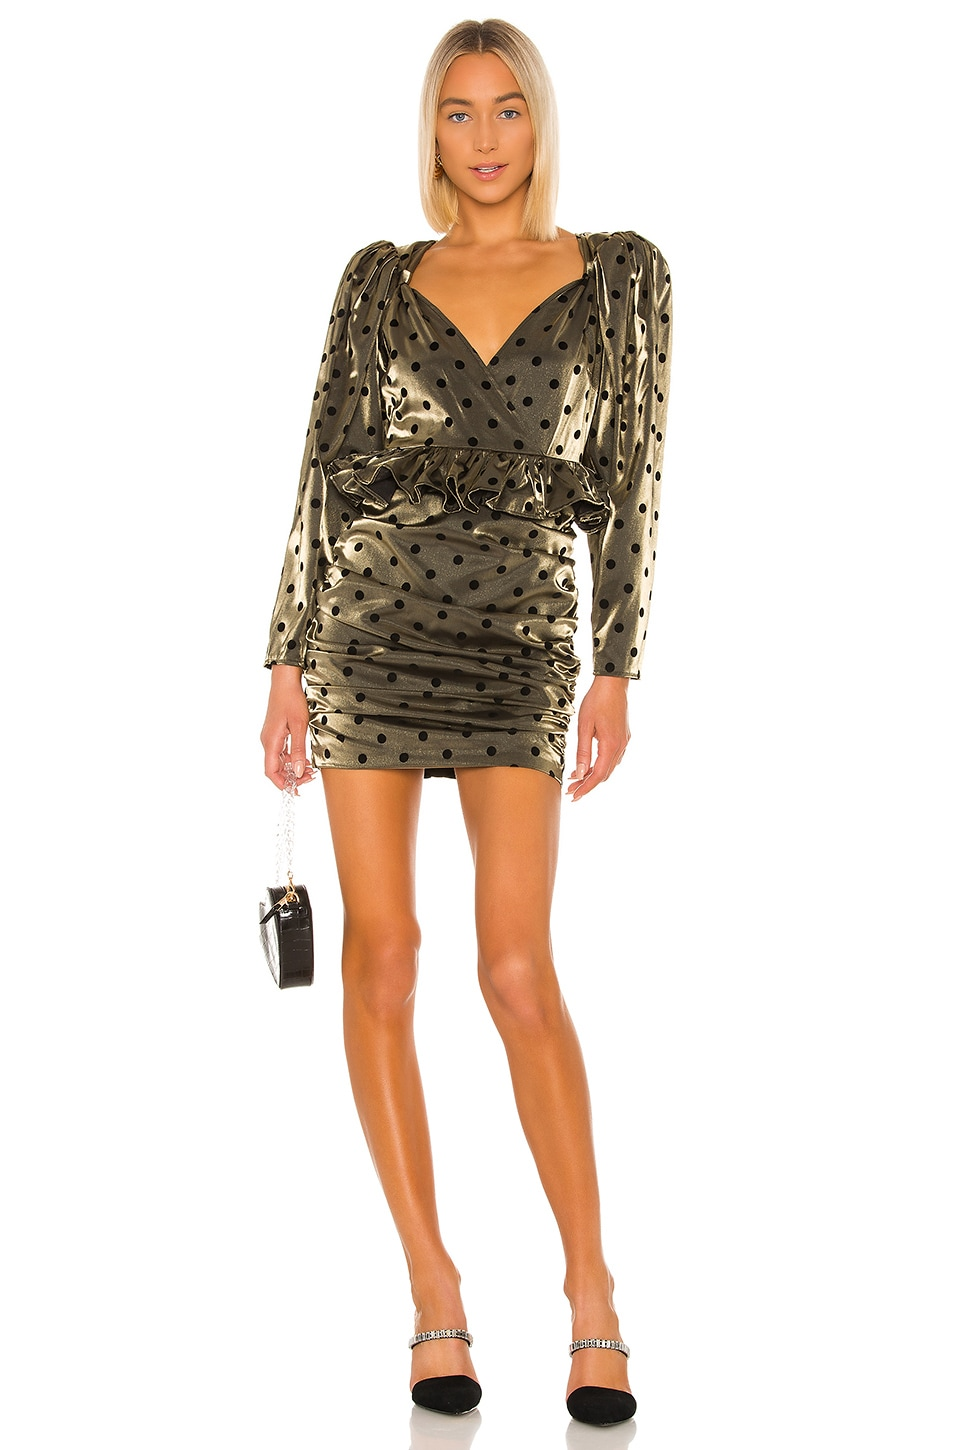 LPA Ailisa Dress in Gold & Black